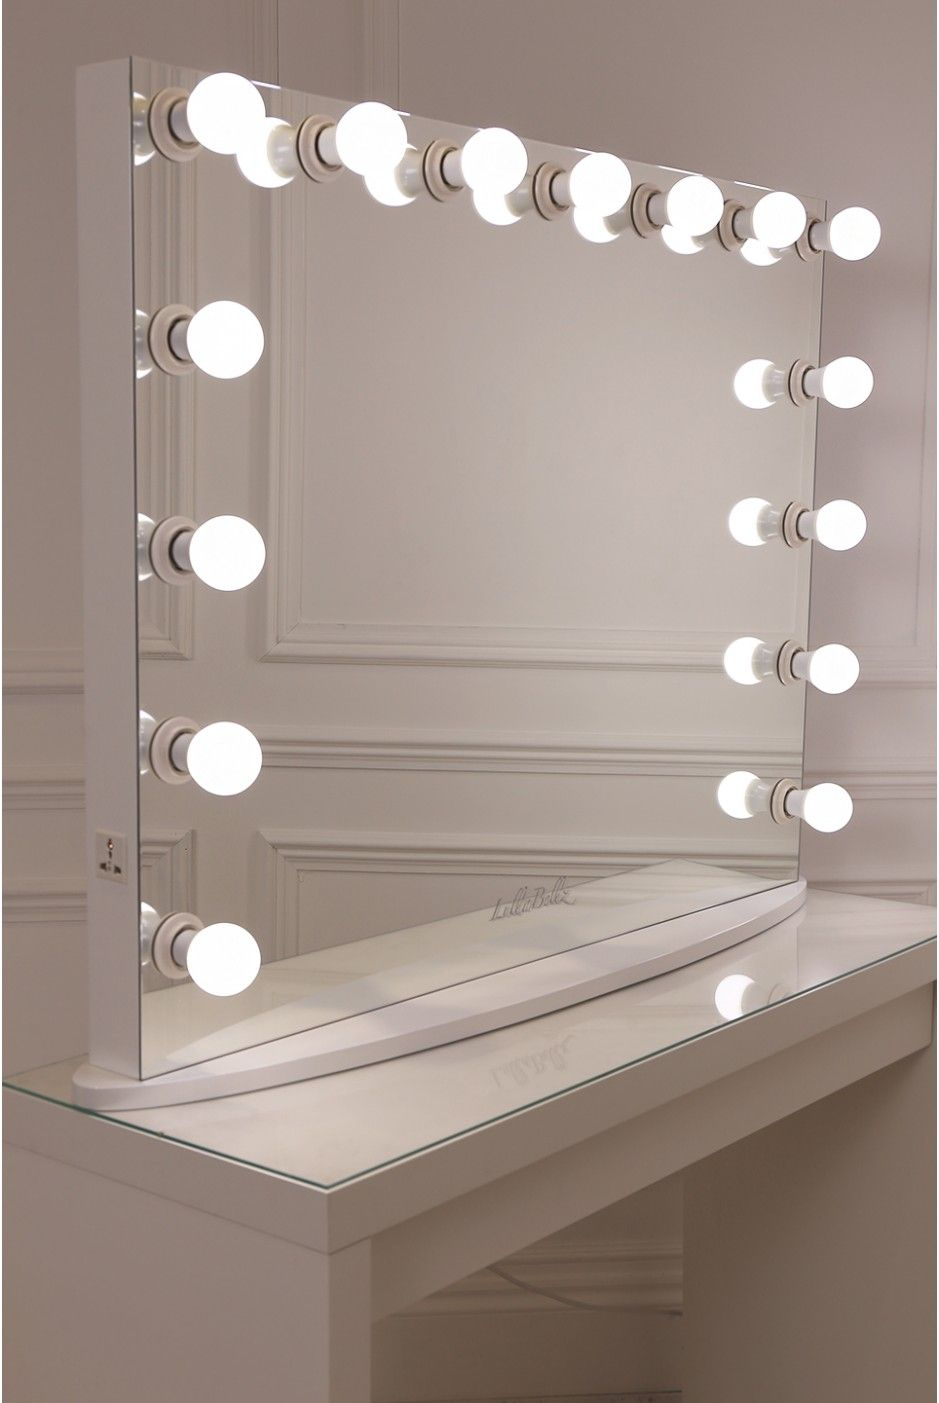 15 Frosted Bulb Hollywood Mirror With Crisp White Finish Hollywood Vanity Mirror Mirror Bedroom Decor Mirror With Lights